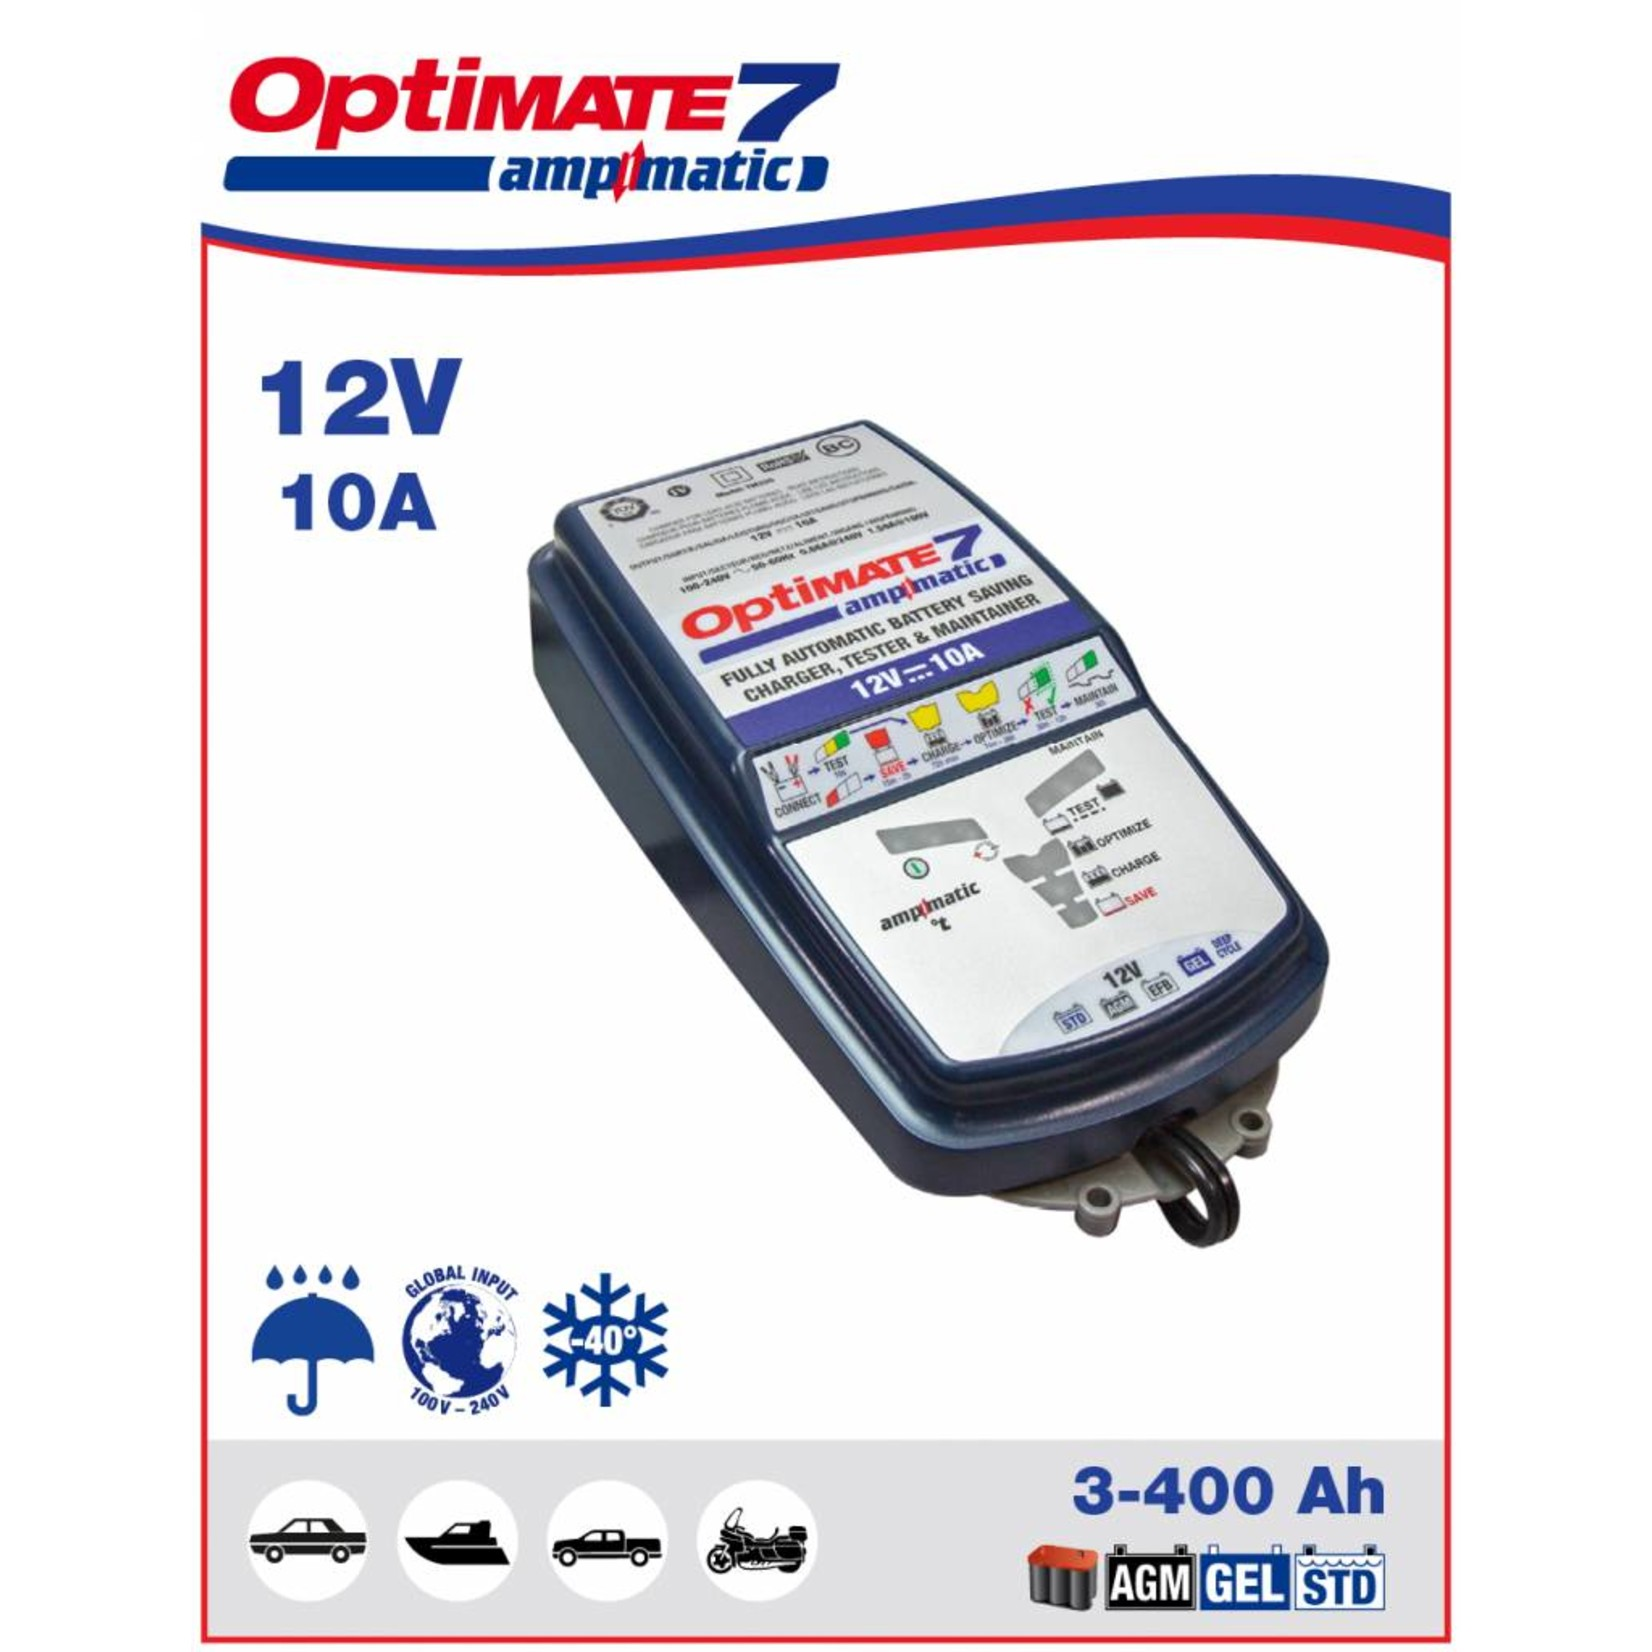 OptiMate OptiMate 7 Ampmatic - Battery Charger 12V